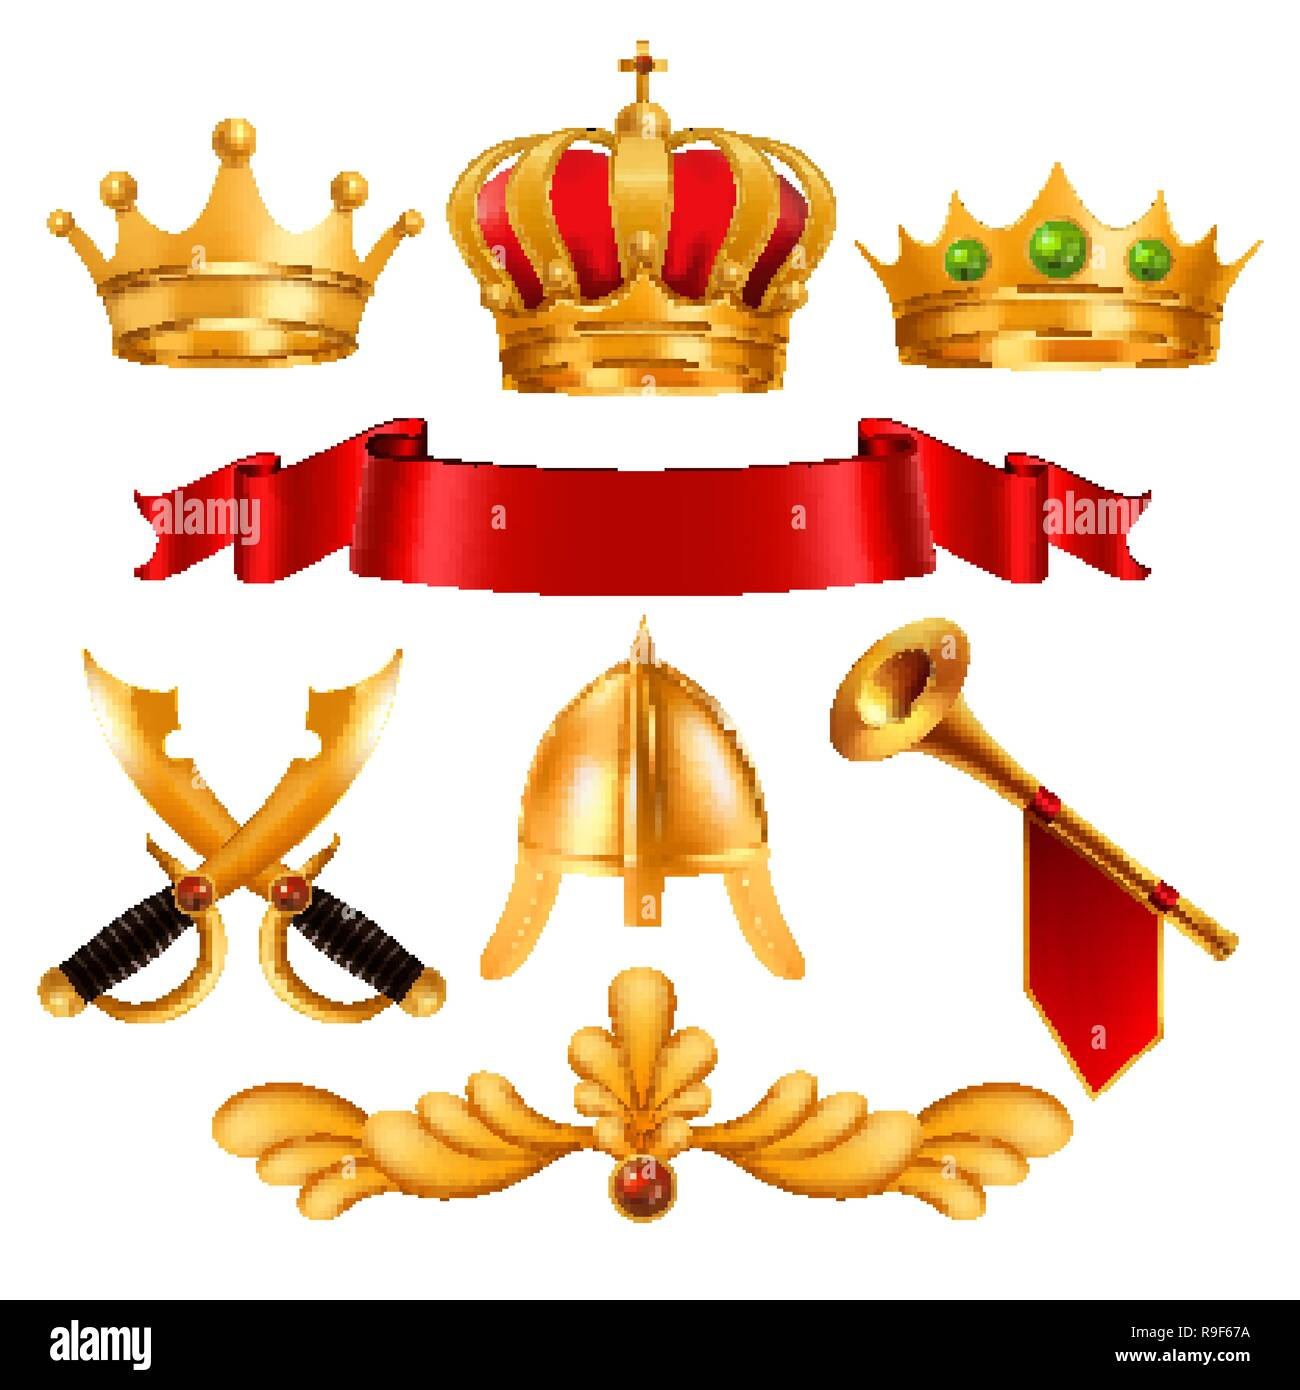 Gold Crown Vector. Golden King Royal Crown With Gems, Red Ribbon Velvet Textile, Swordm Helmet, Horn. Monarchy Power, Competition Winner. Certificate, Diploma Design. Isolated Realistic Illustration - Stock Vector